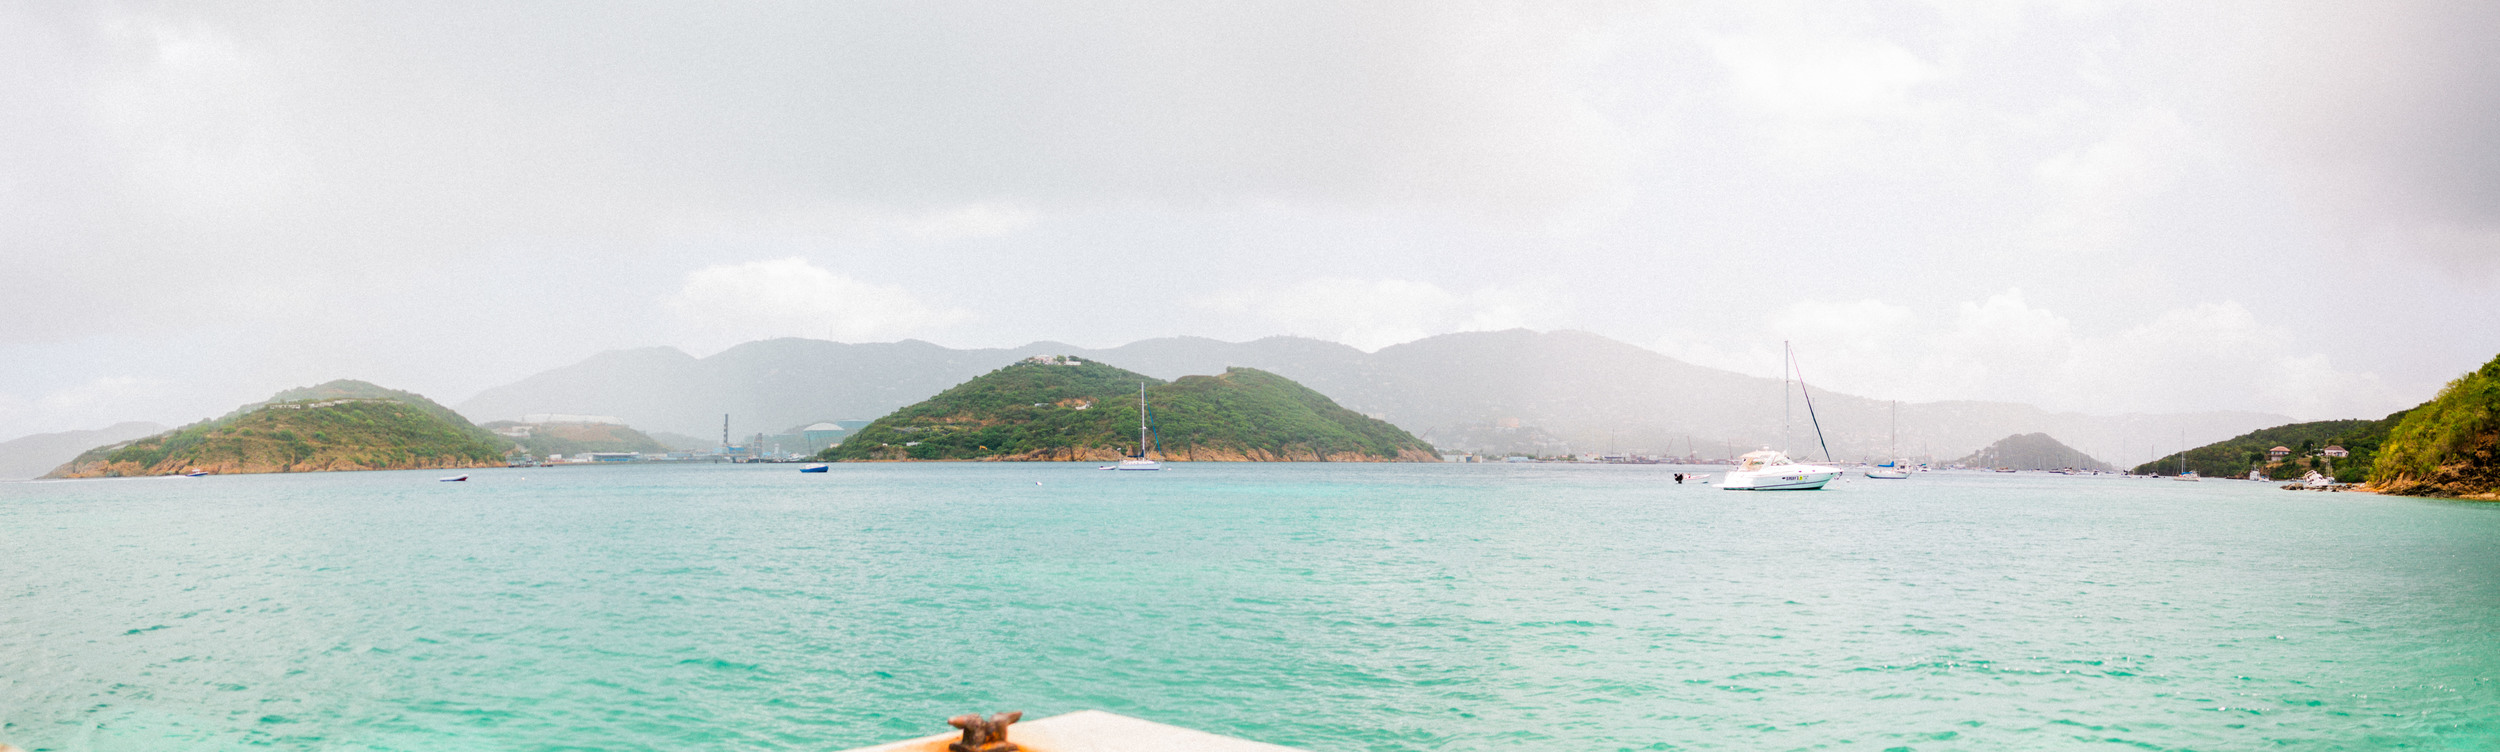 St. Thomas, water island USVI, ocean scenery traveling photographer